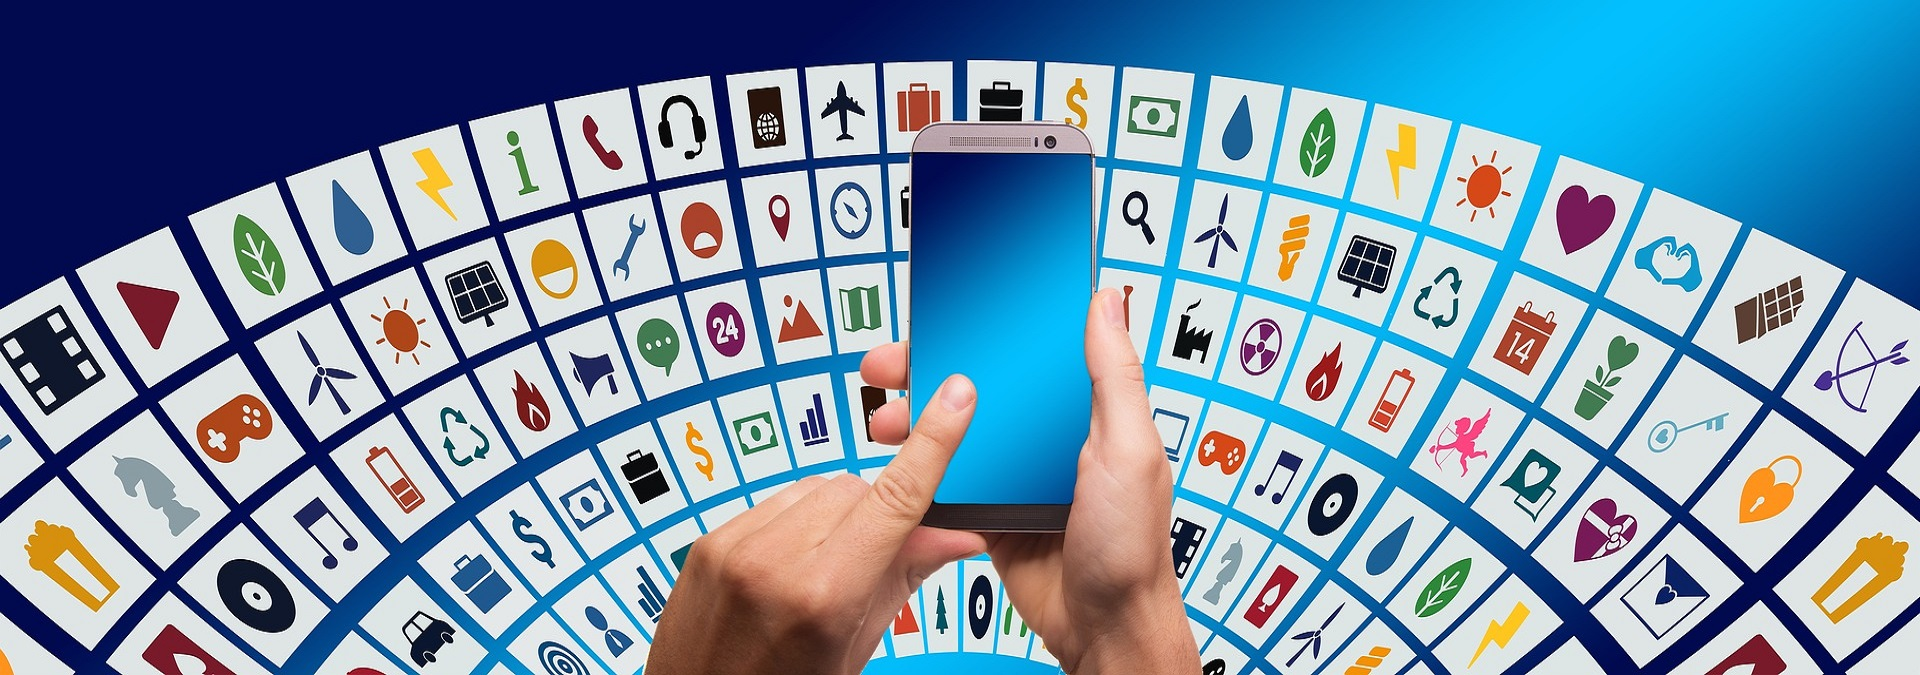 Mobile technology is now widely used all over the world.